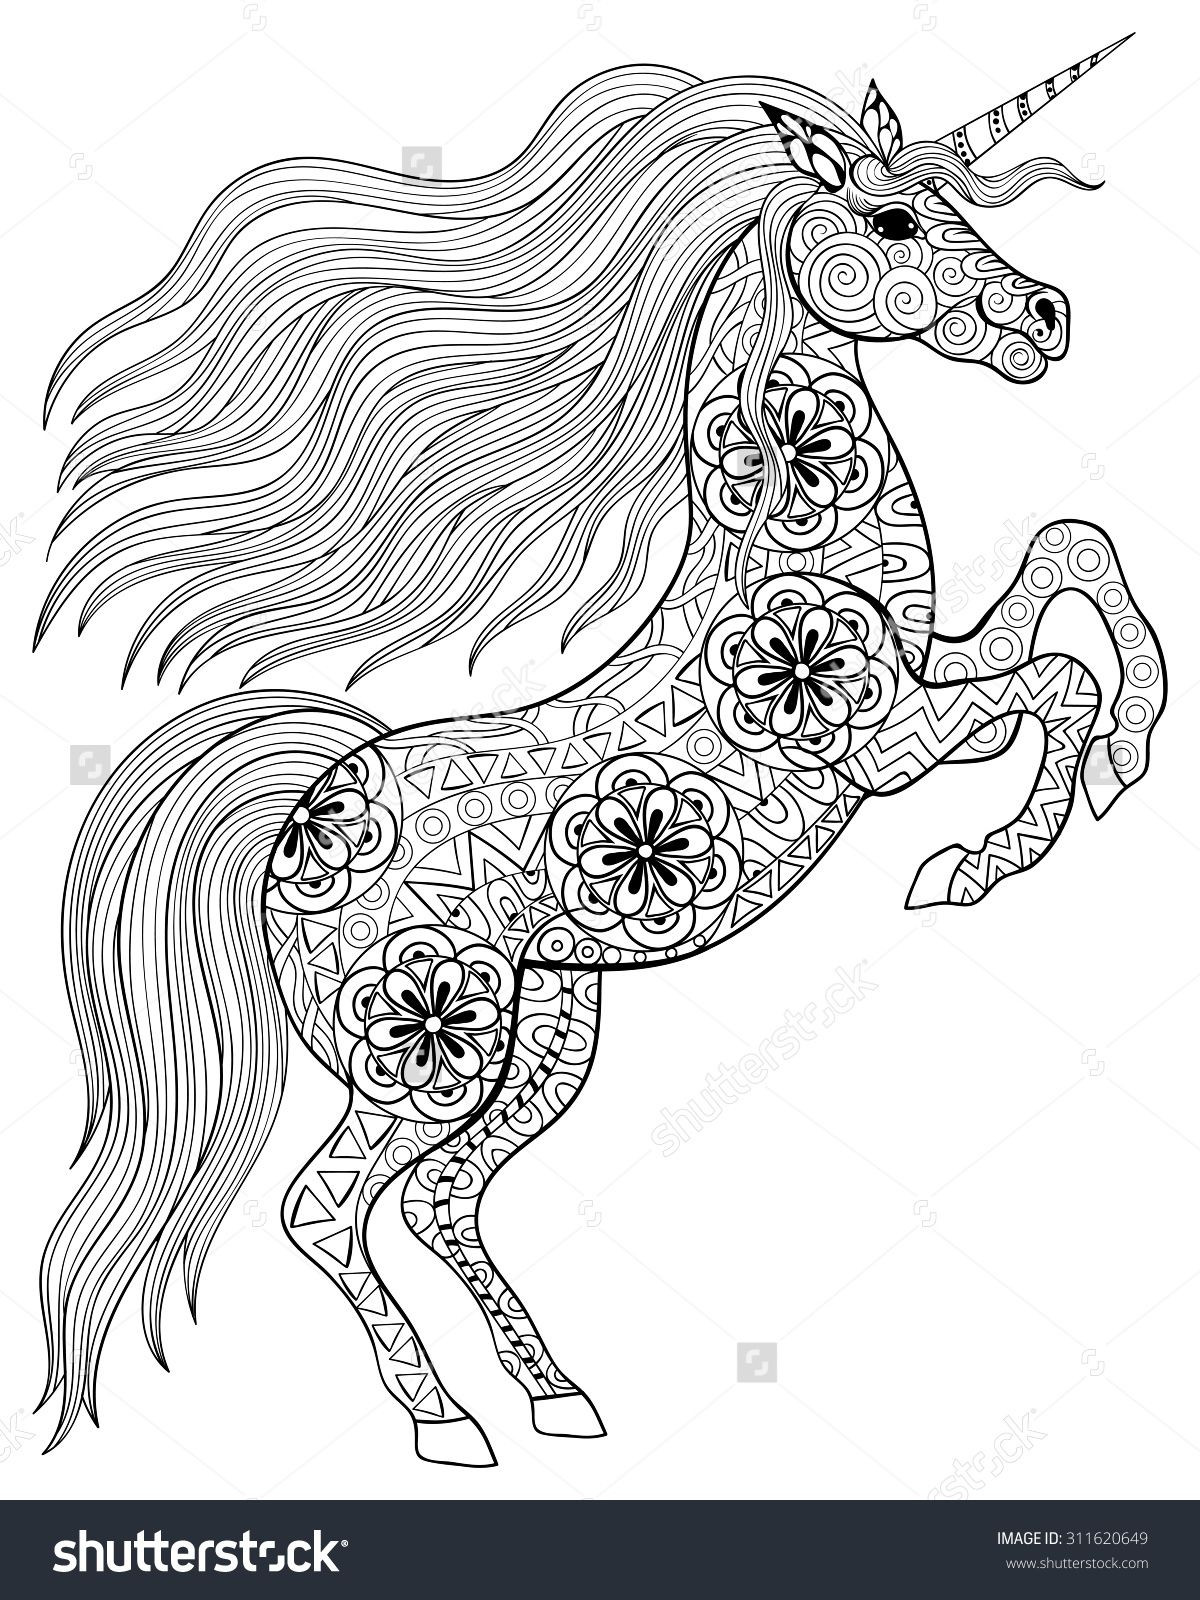 Adult Coloring Pages Unicorn  Pin by Ulrica Flodin on 1A d z Animals